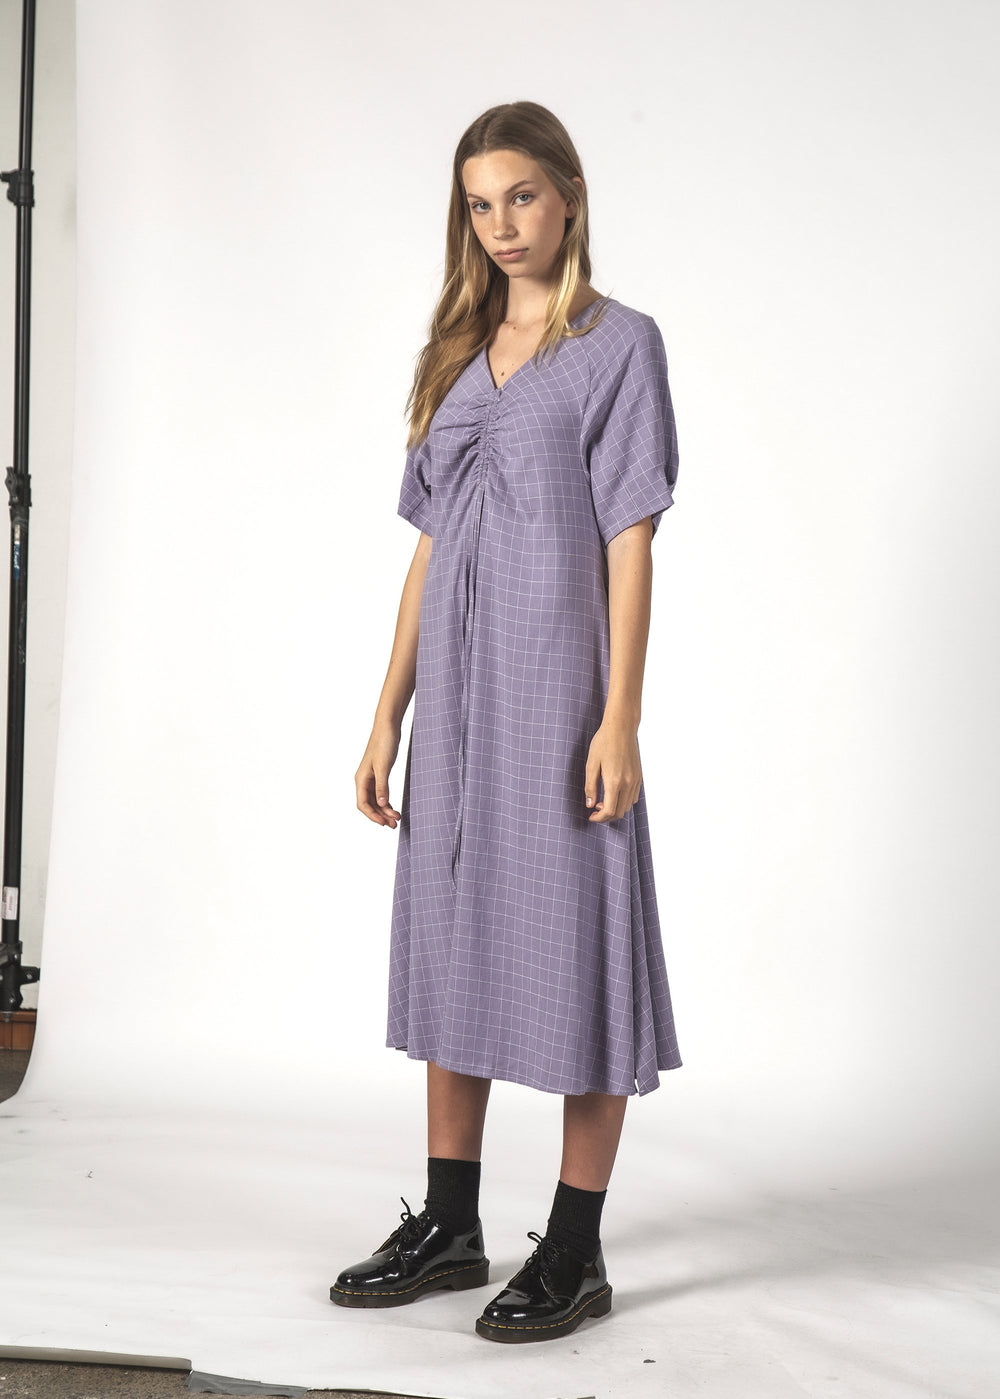 FLURRY DRESS - LAVENDER GRID